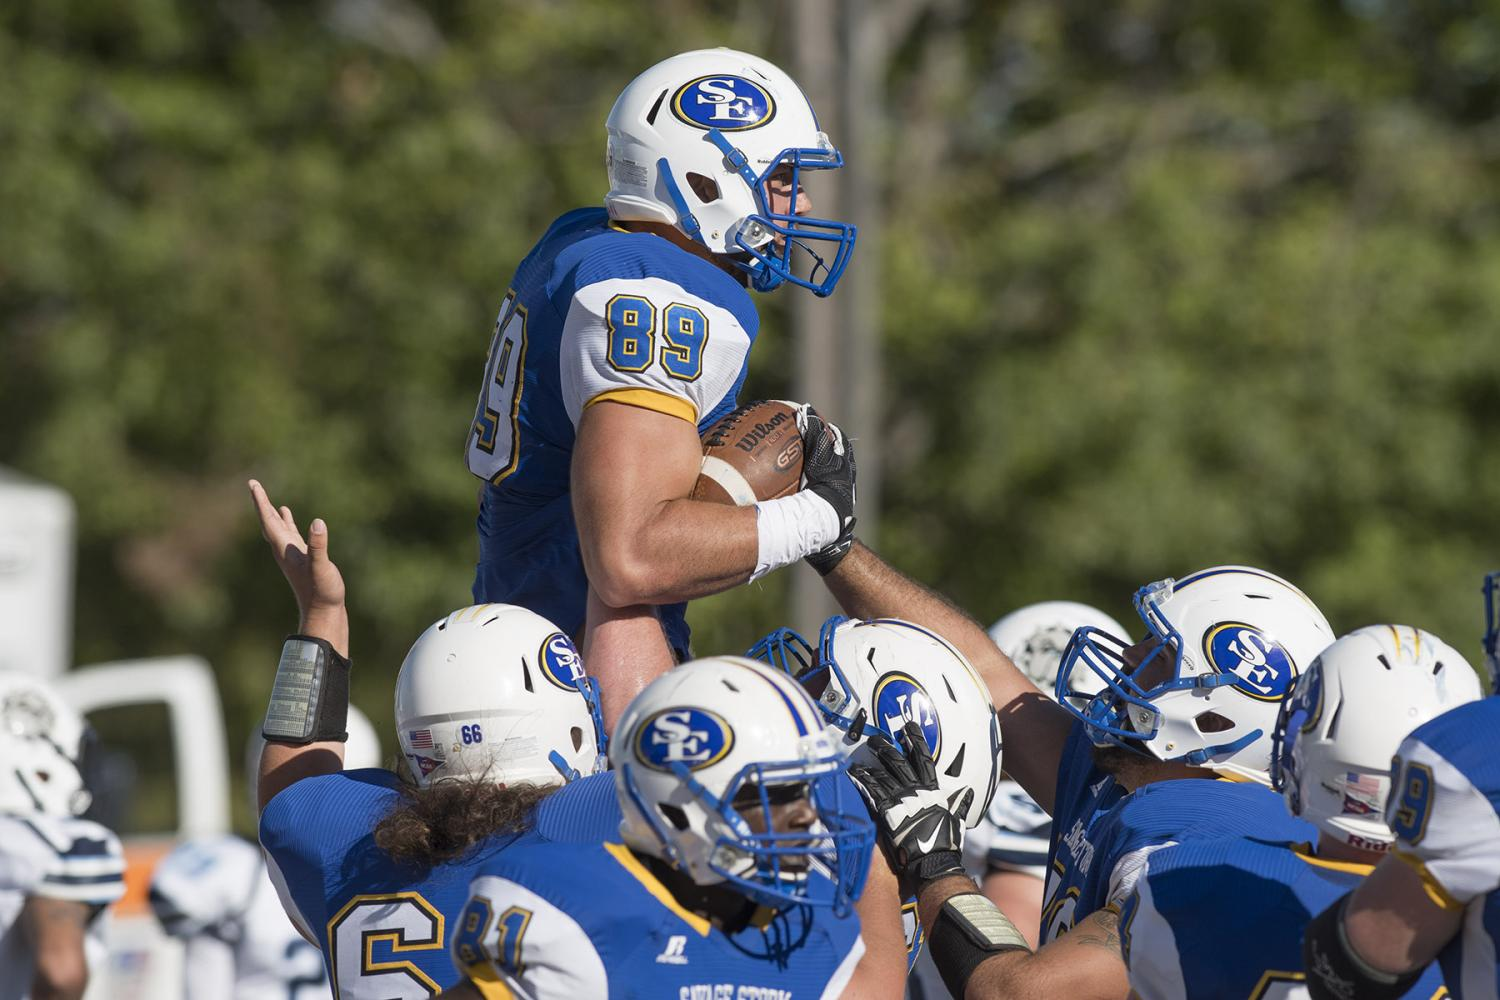 Senior receiver Codey McElroy and teammates celebrate a touchdown during Southeastern's 31-24 victory.